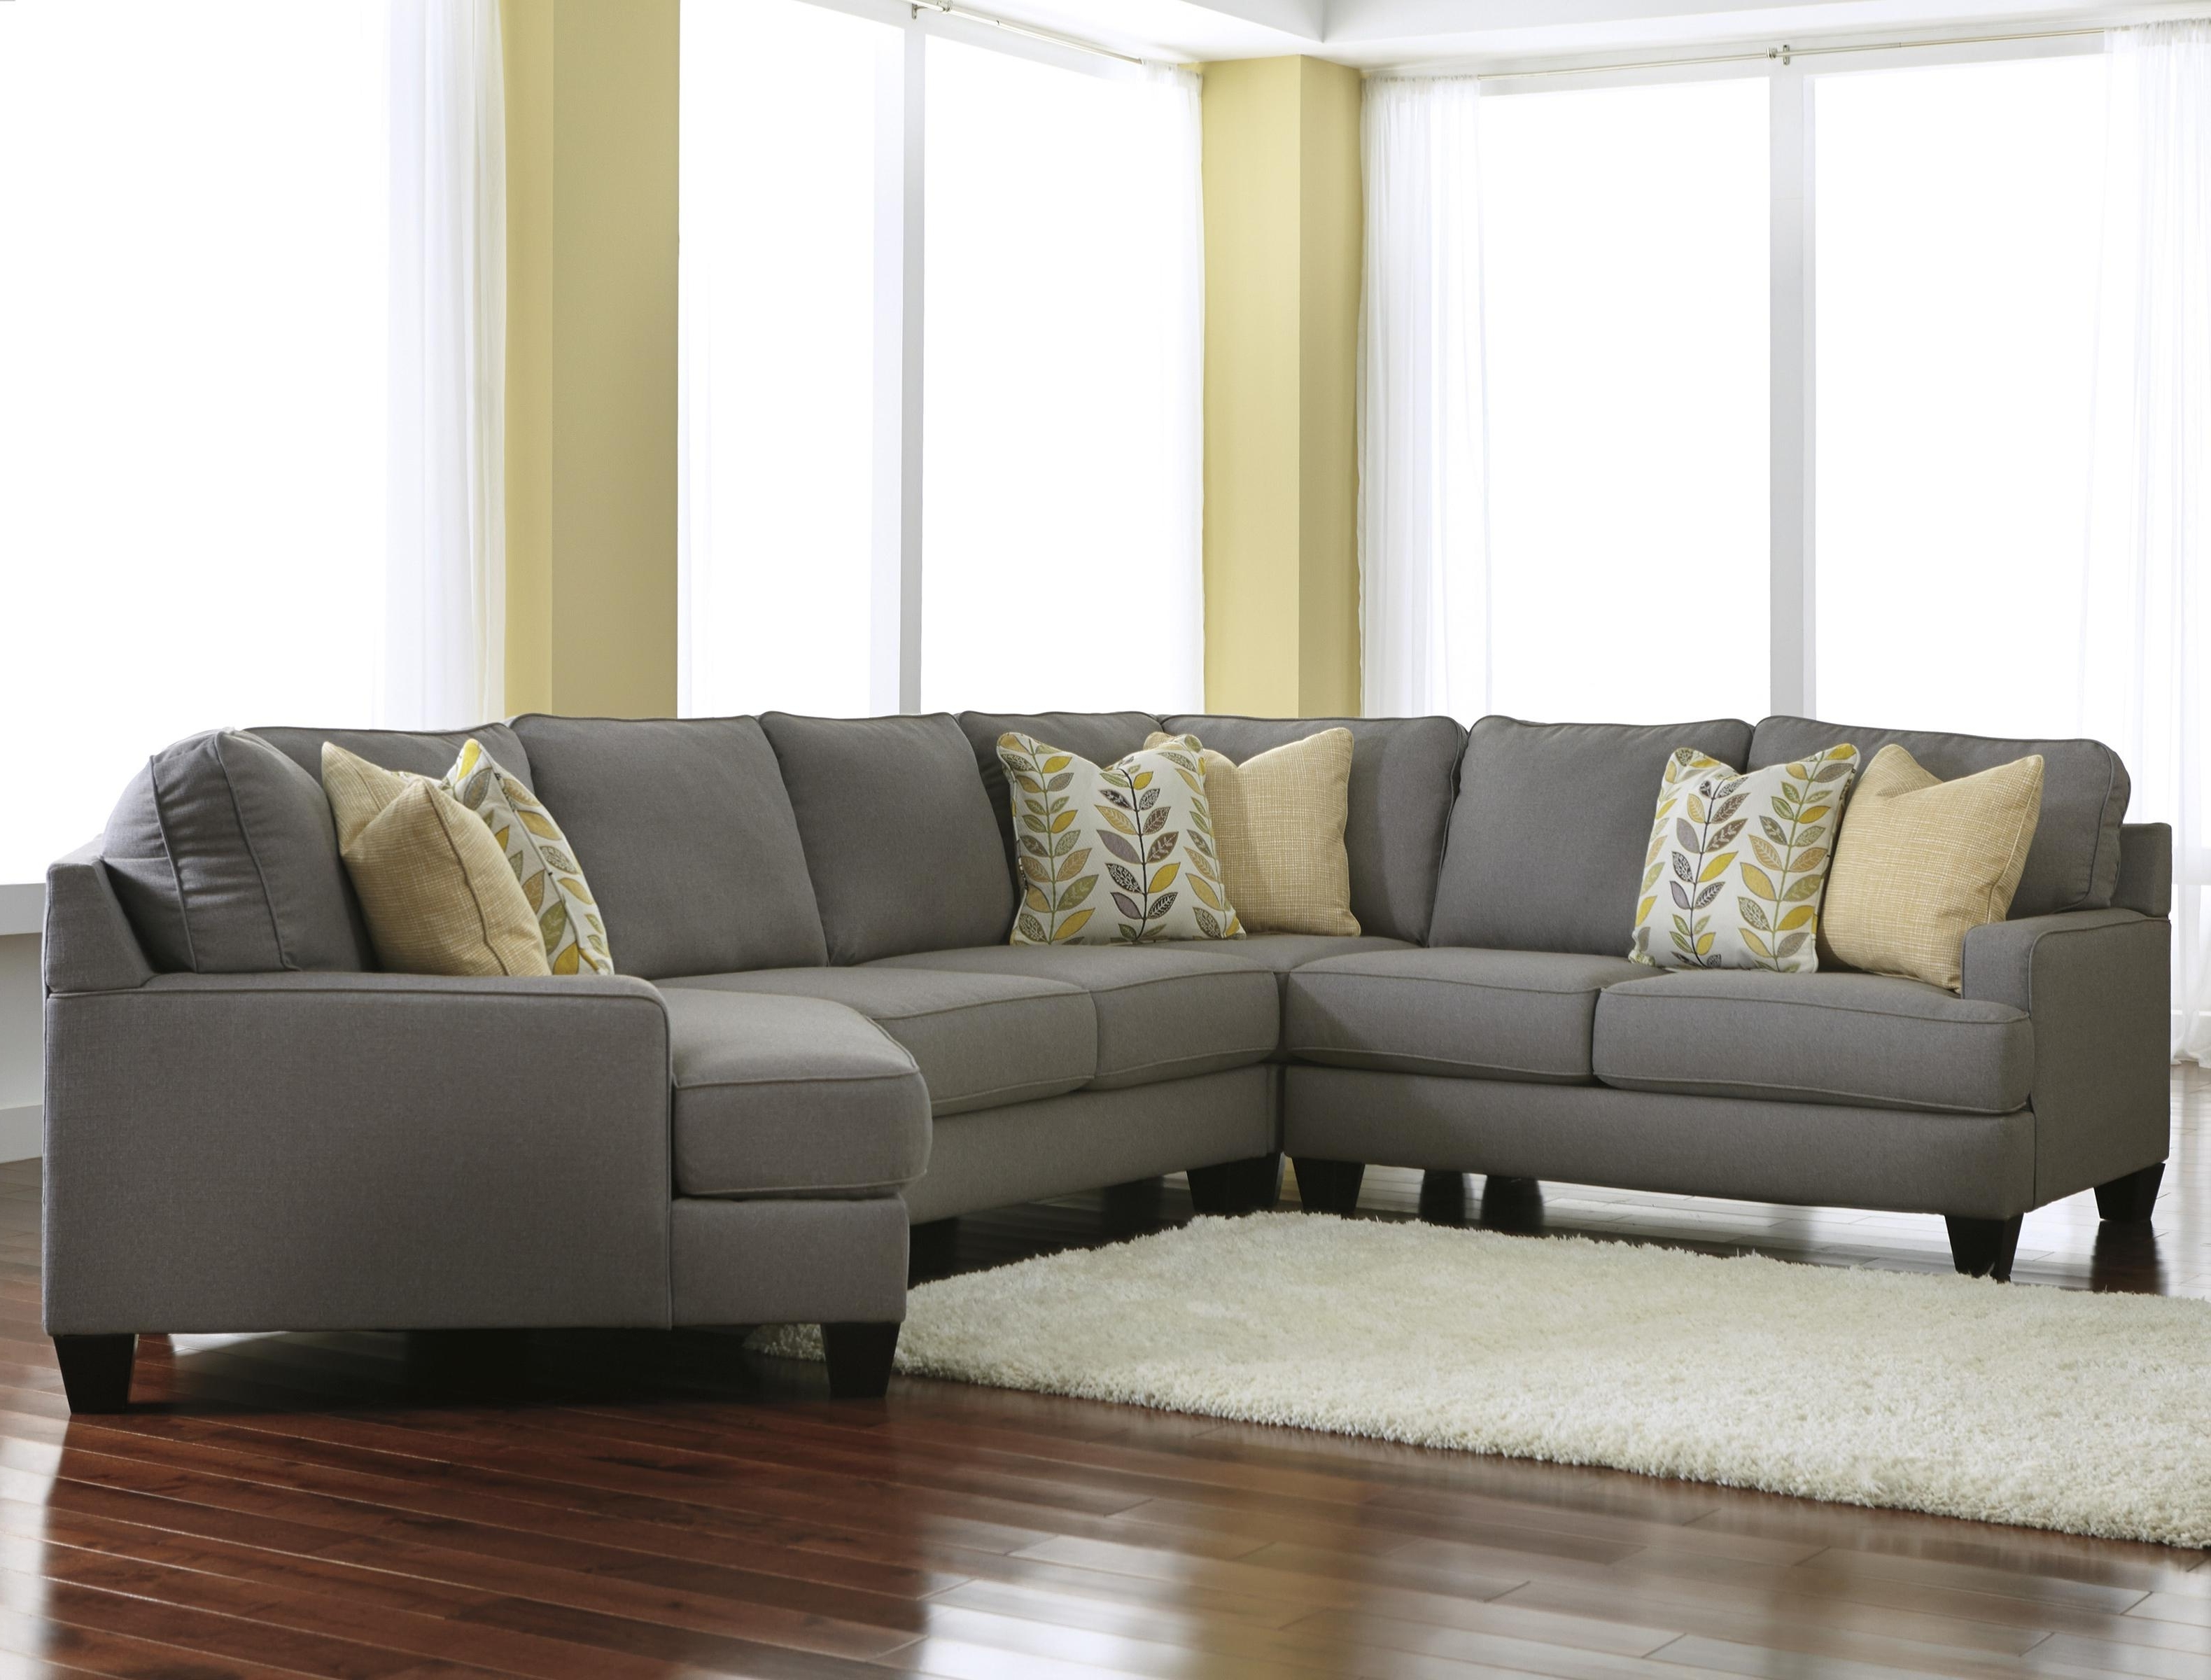 Modern 4 Piece Sectional Sofa With Right Cuddler & Reversible Seat Throughout 2019 Harrisburg Pa Sectional Sofas (View 16 of 20)